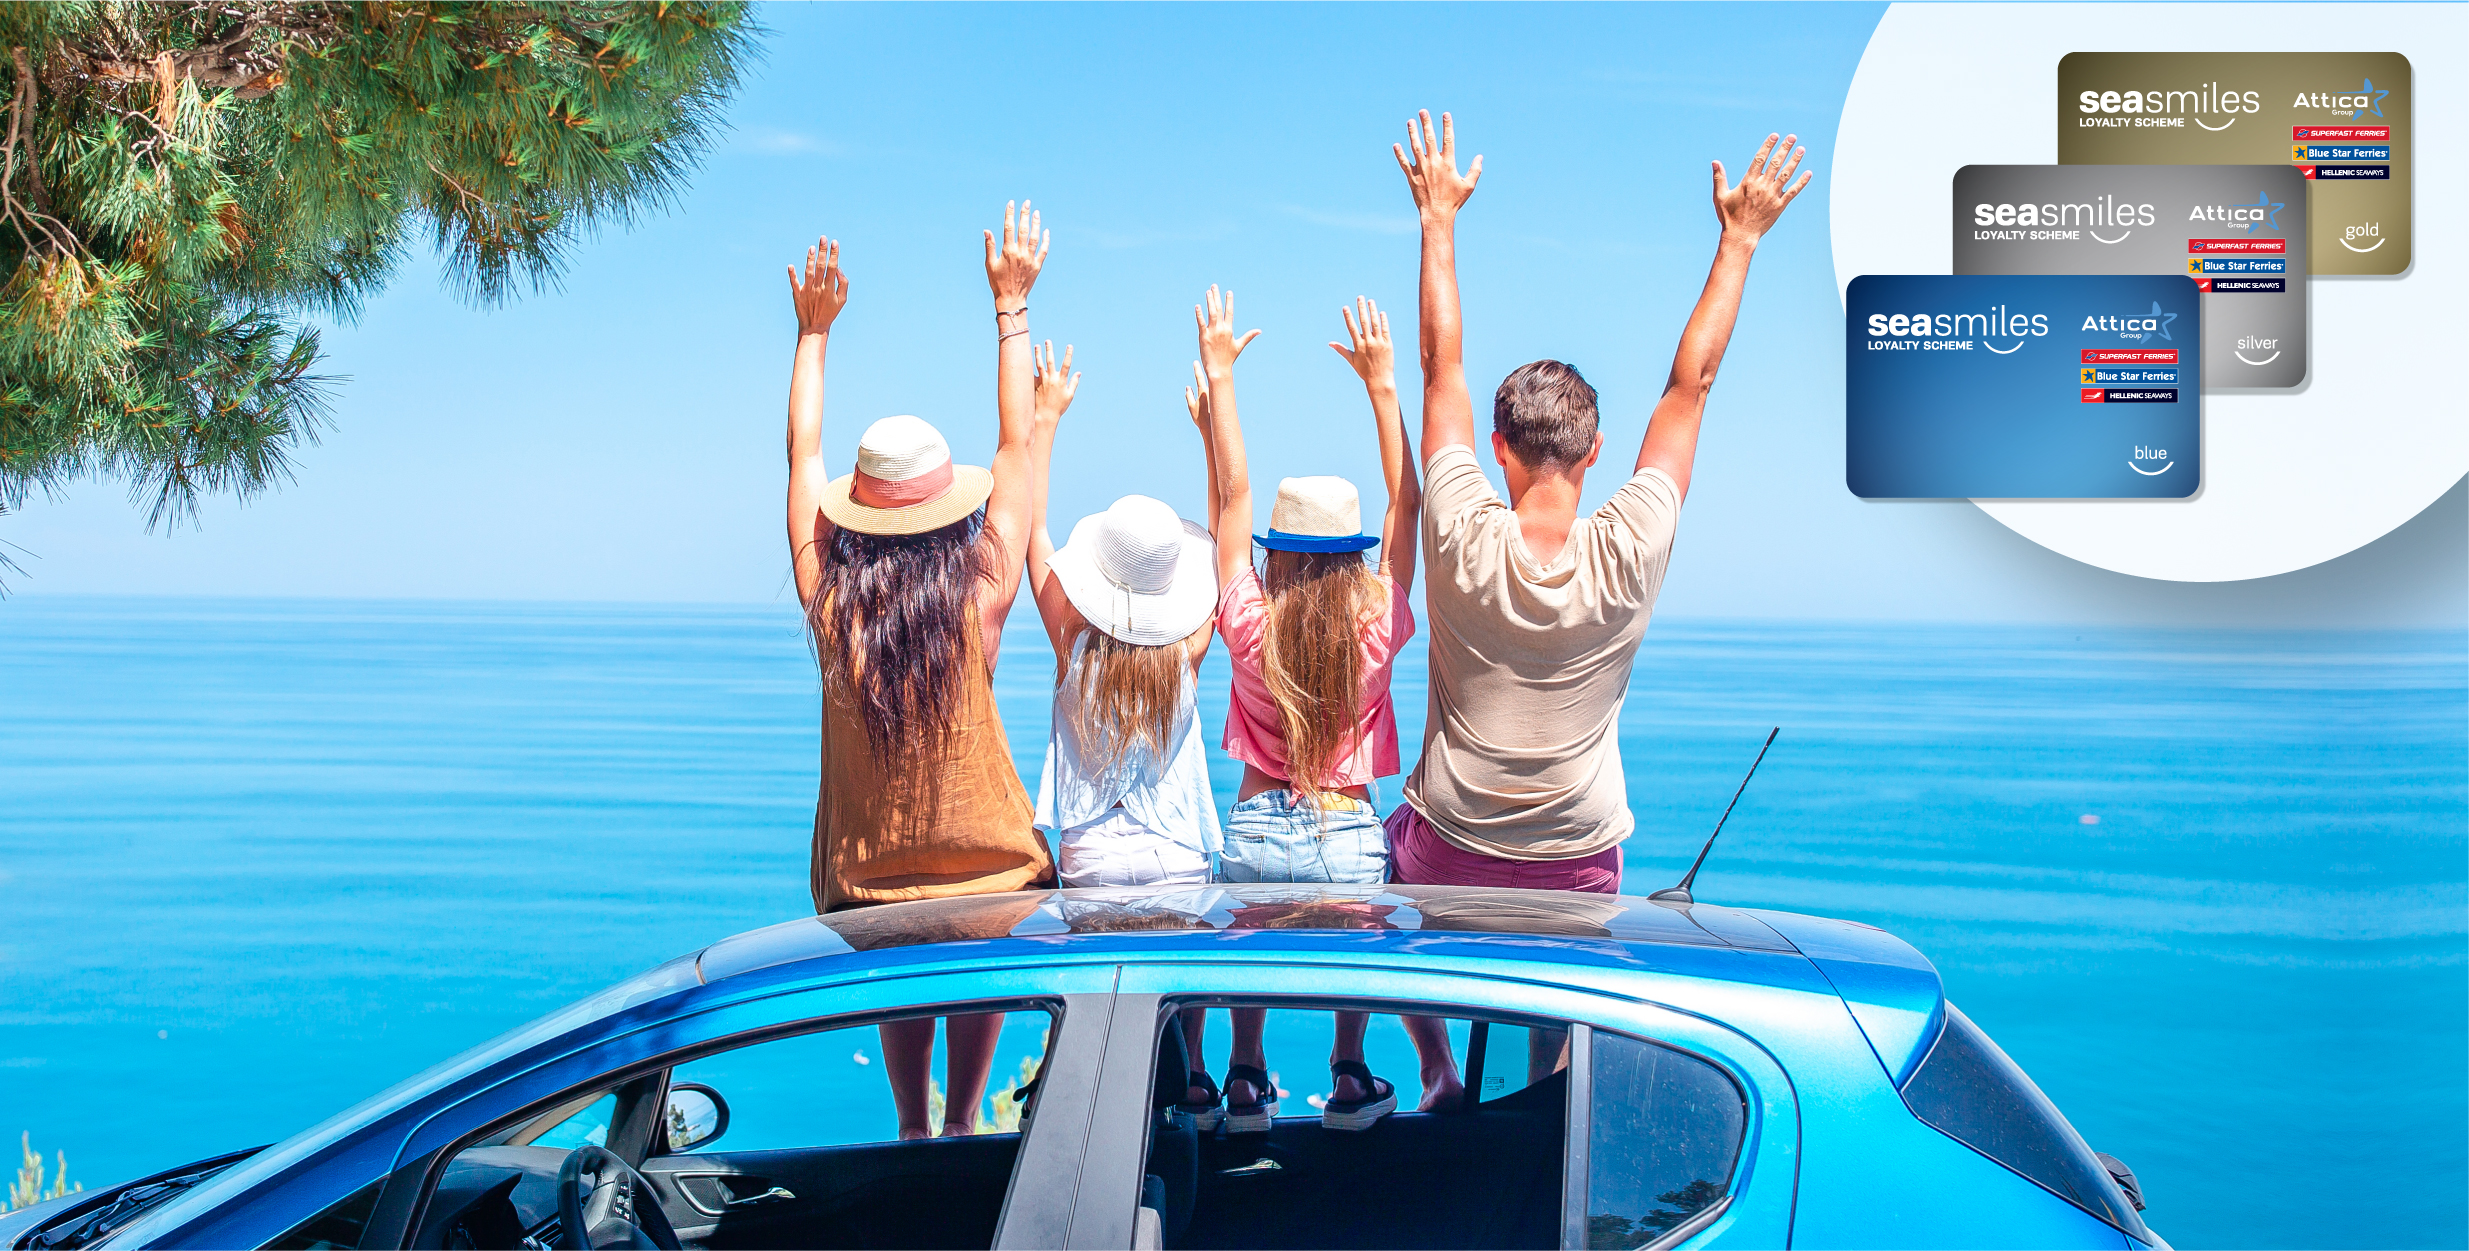 40% discount on cars for Seasmiles Members!